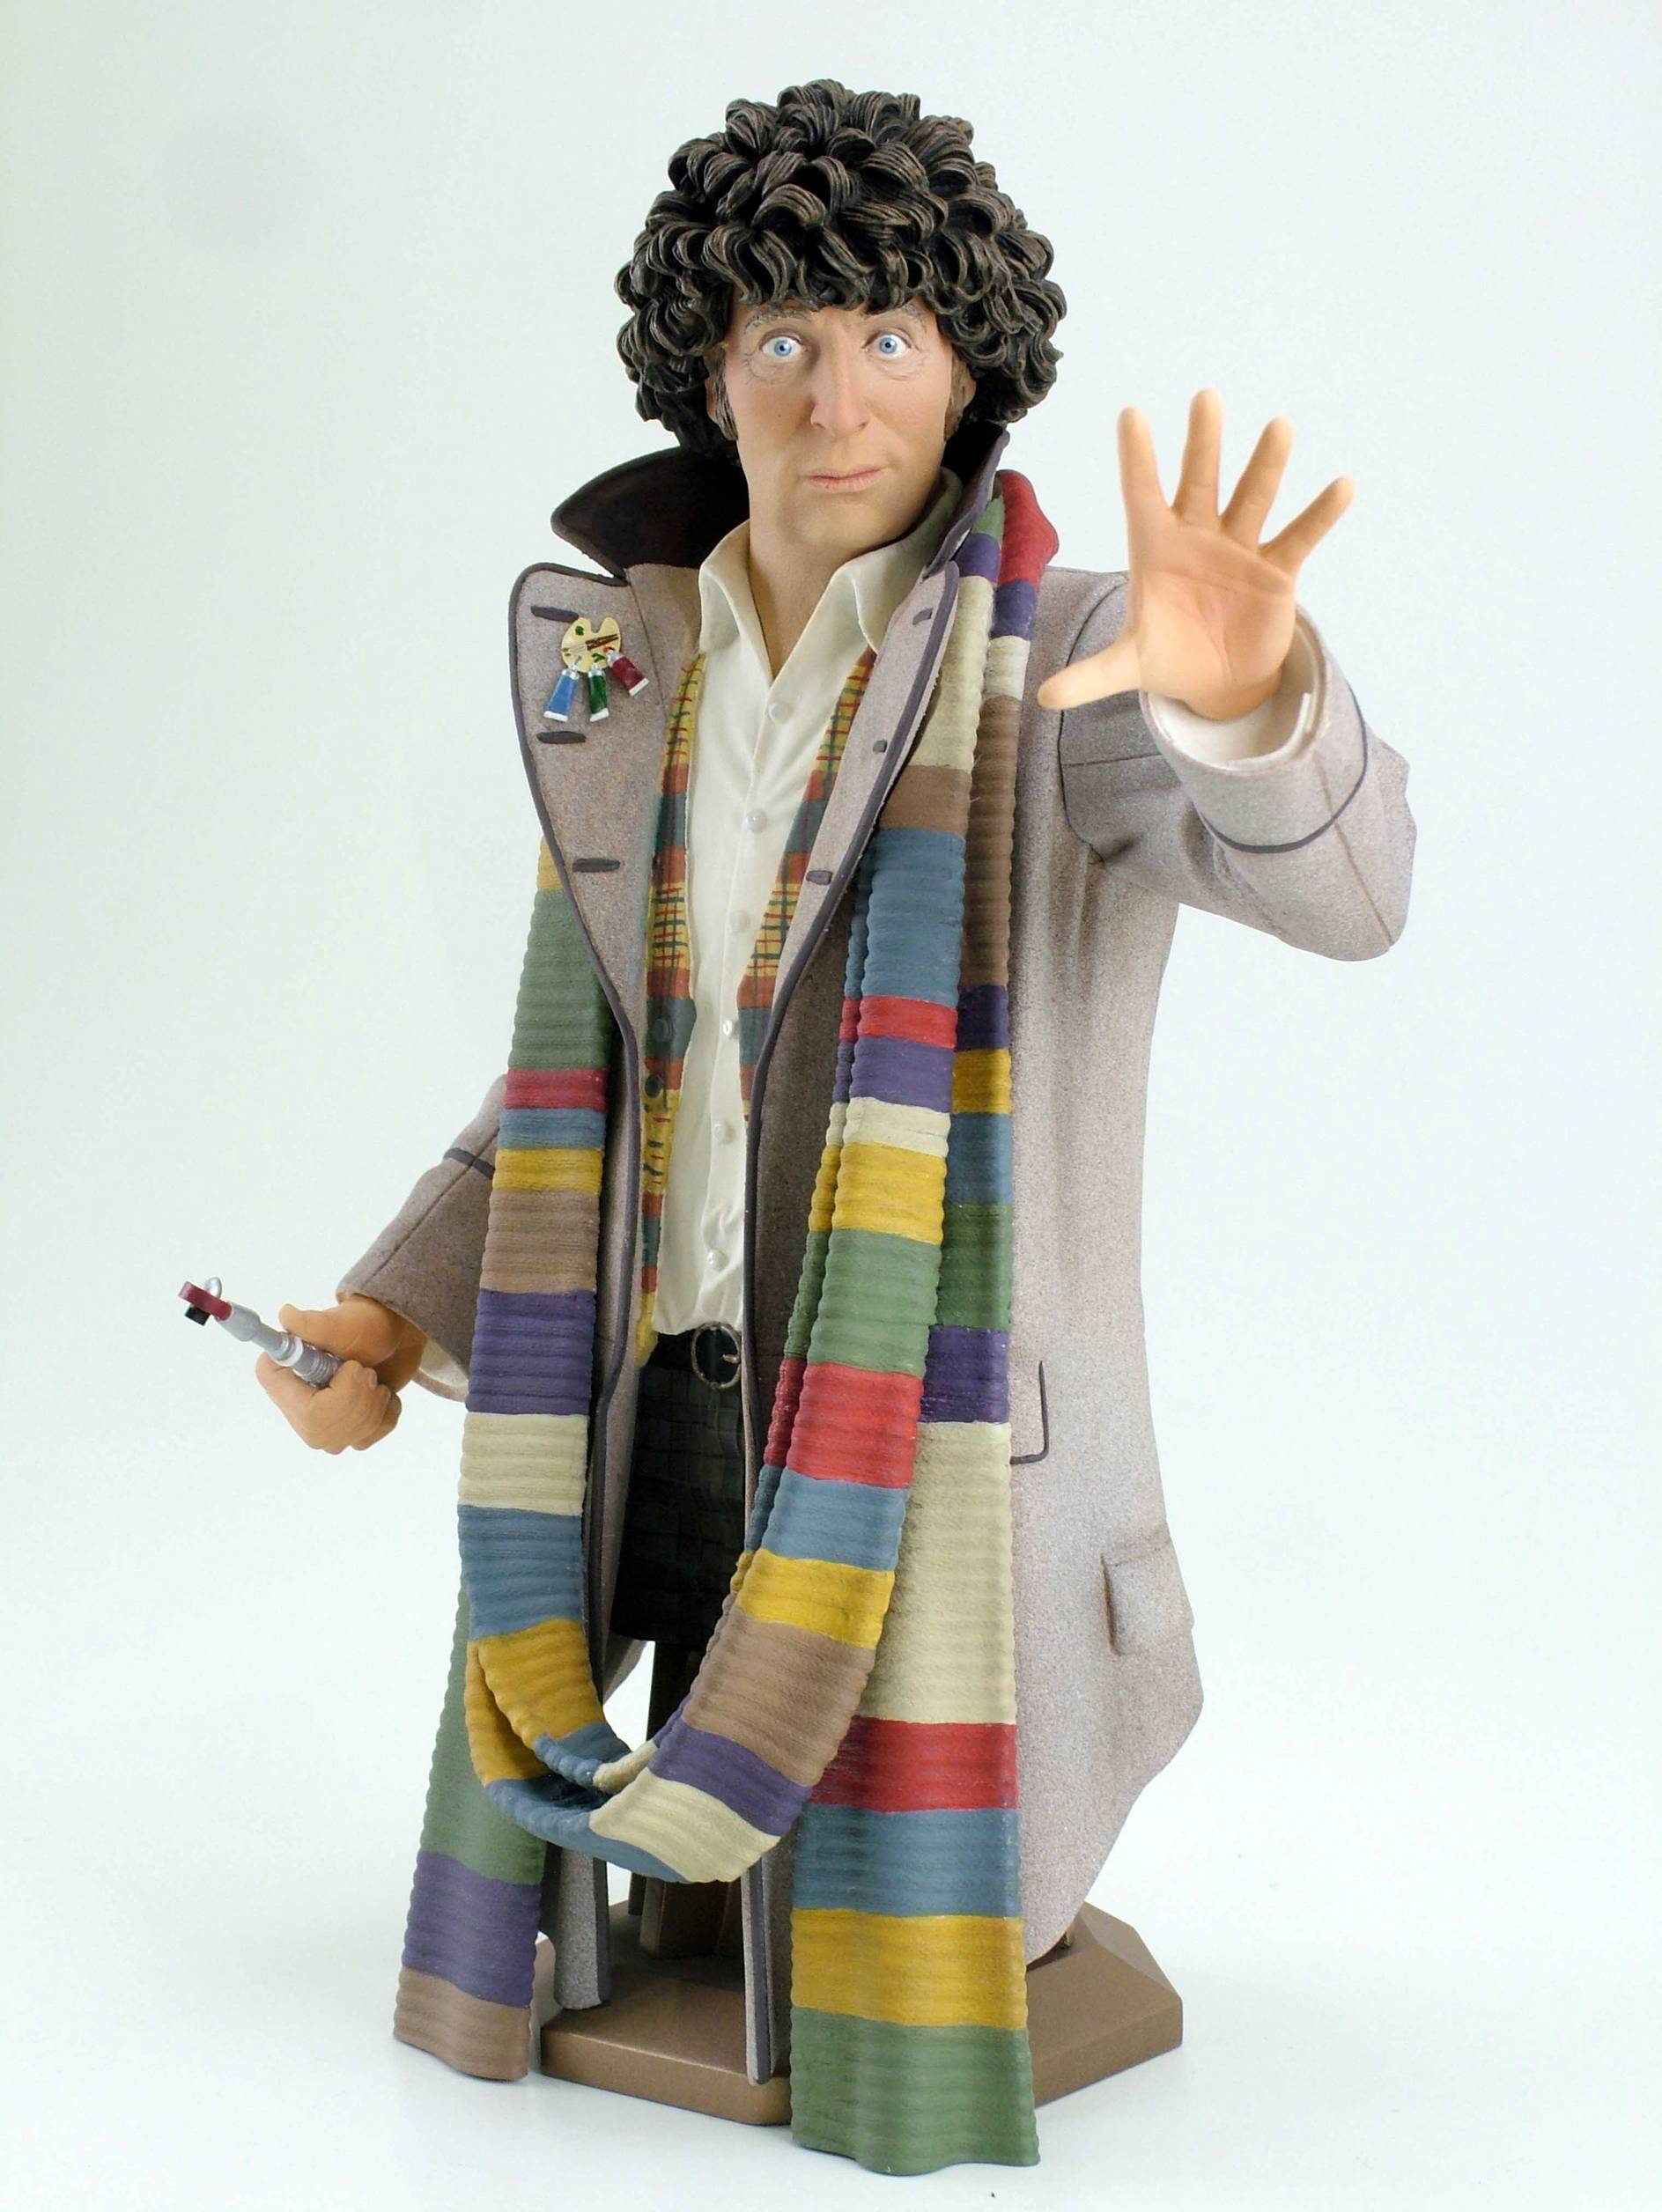 DOCTOR WHO 4TH DOCTOR MINI BUST